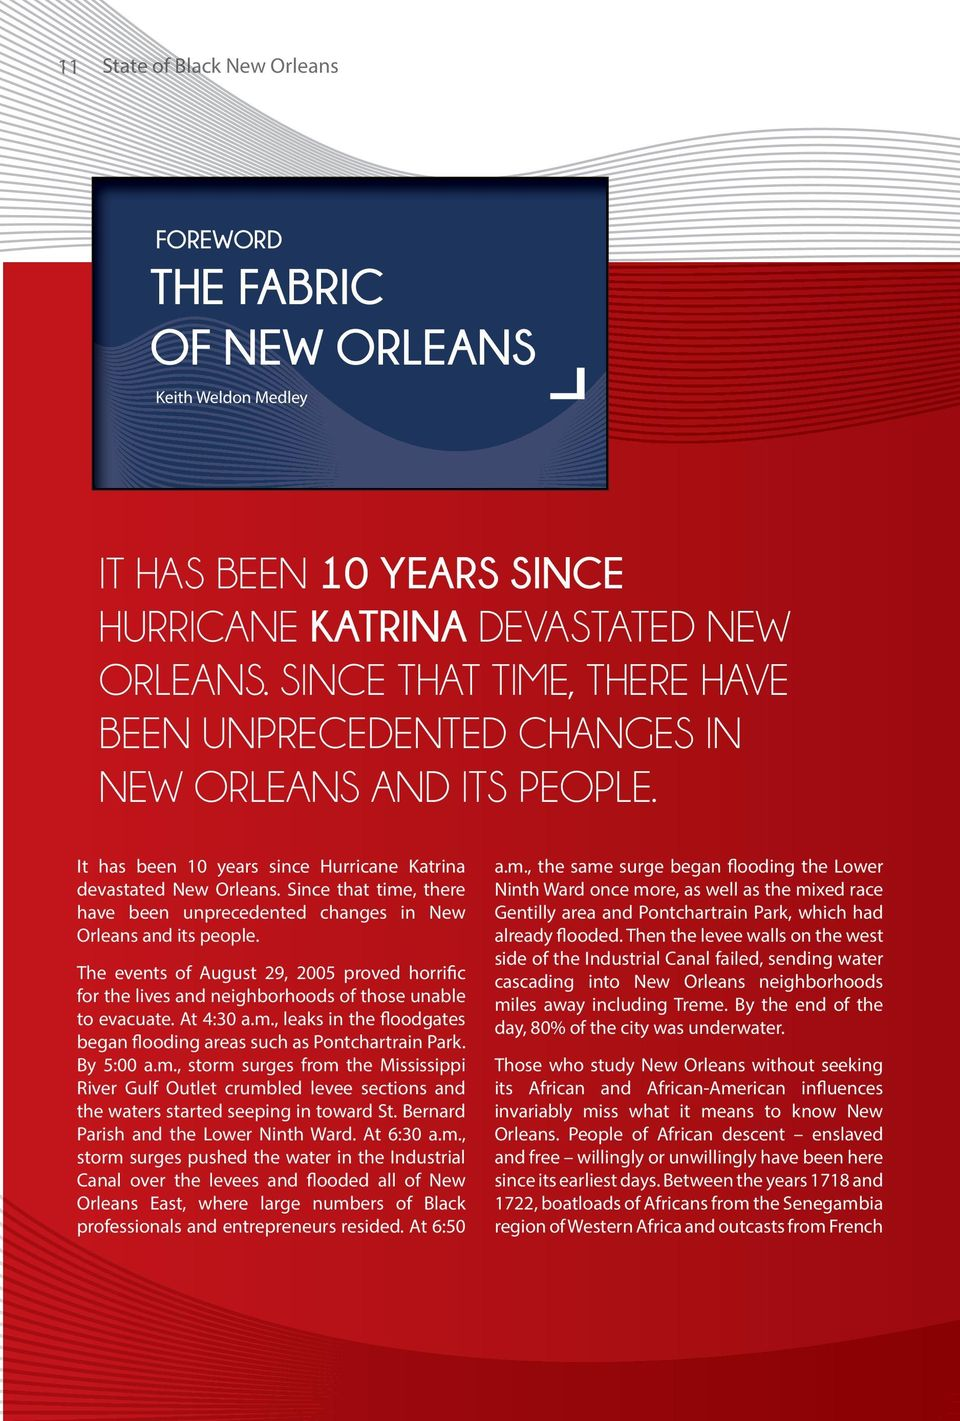 Since that time, there have been unprecedented changes in New Orleans and its people. The events of August 29, 2005 proved horrific for the lives and neighborhoods of those unable to evacuate.